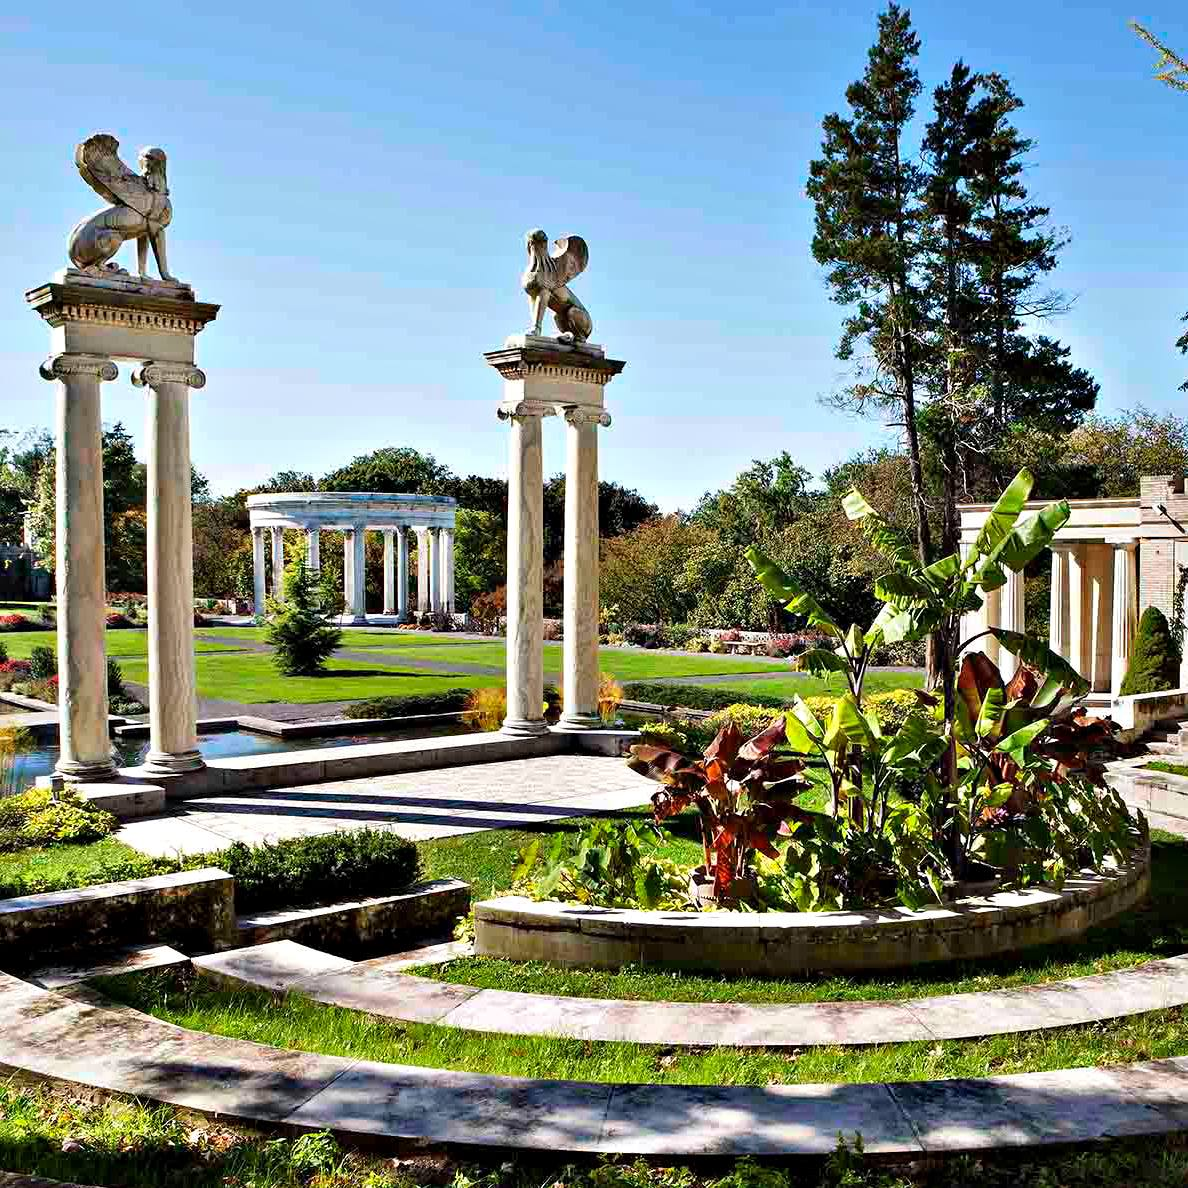 Samuel Untermyer Gardens, 945 N Broadway - Untermyer Performing Arts Council celebrates Yonkers Arts Weekend at the garden. Enjoy the sounds of music while strolling through our incredible Untermyer Park!May 18th1:30-3:00 pm: Jazz in the Park with The Lee Marvin Trio1:30-2:30 pm: Art in the ParkMay 19th1:30-3:00 pm: Jazz in the Park with The Eric Lesser Blues Band